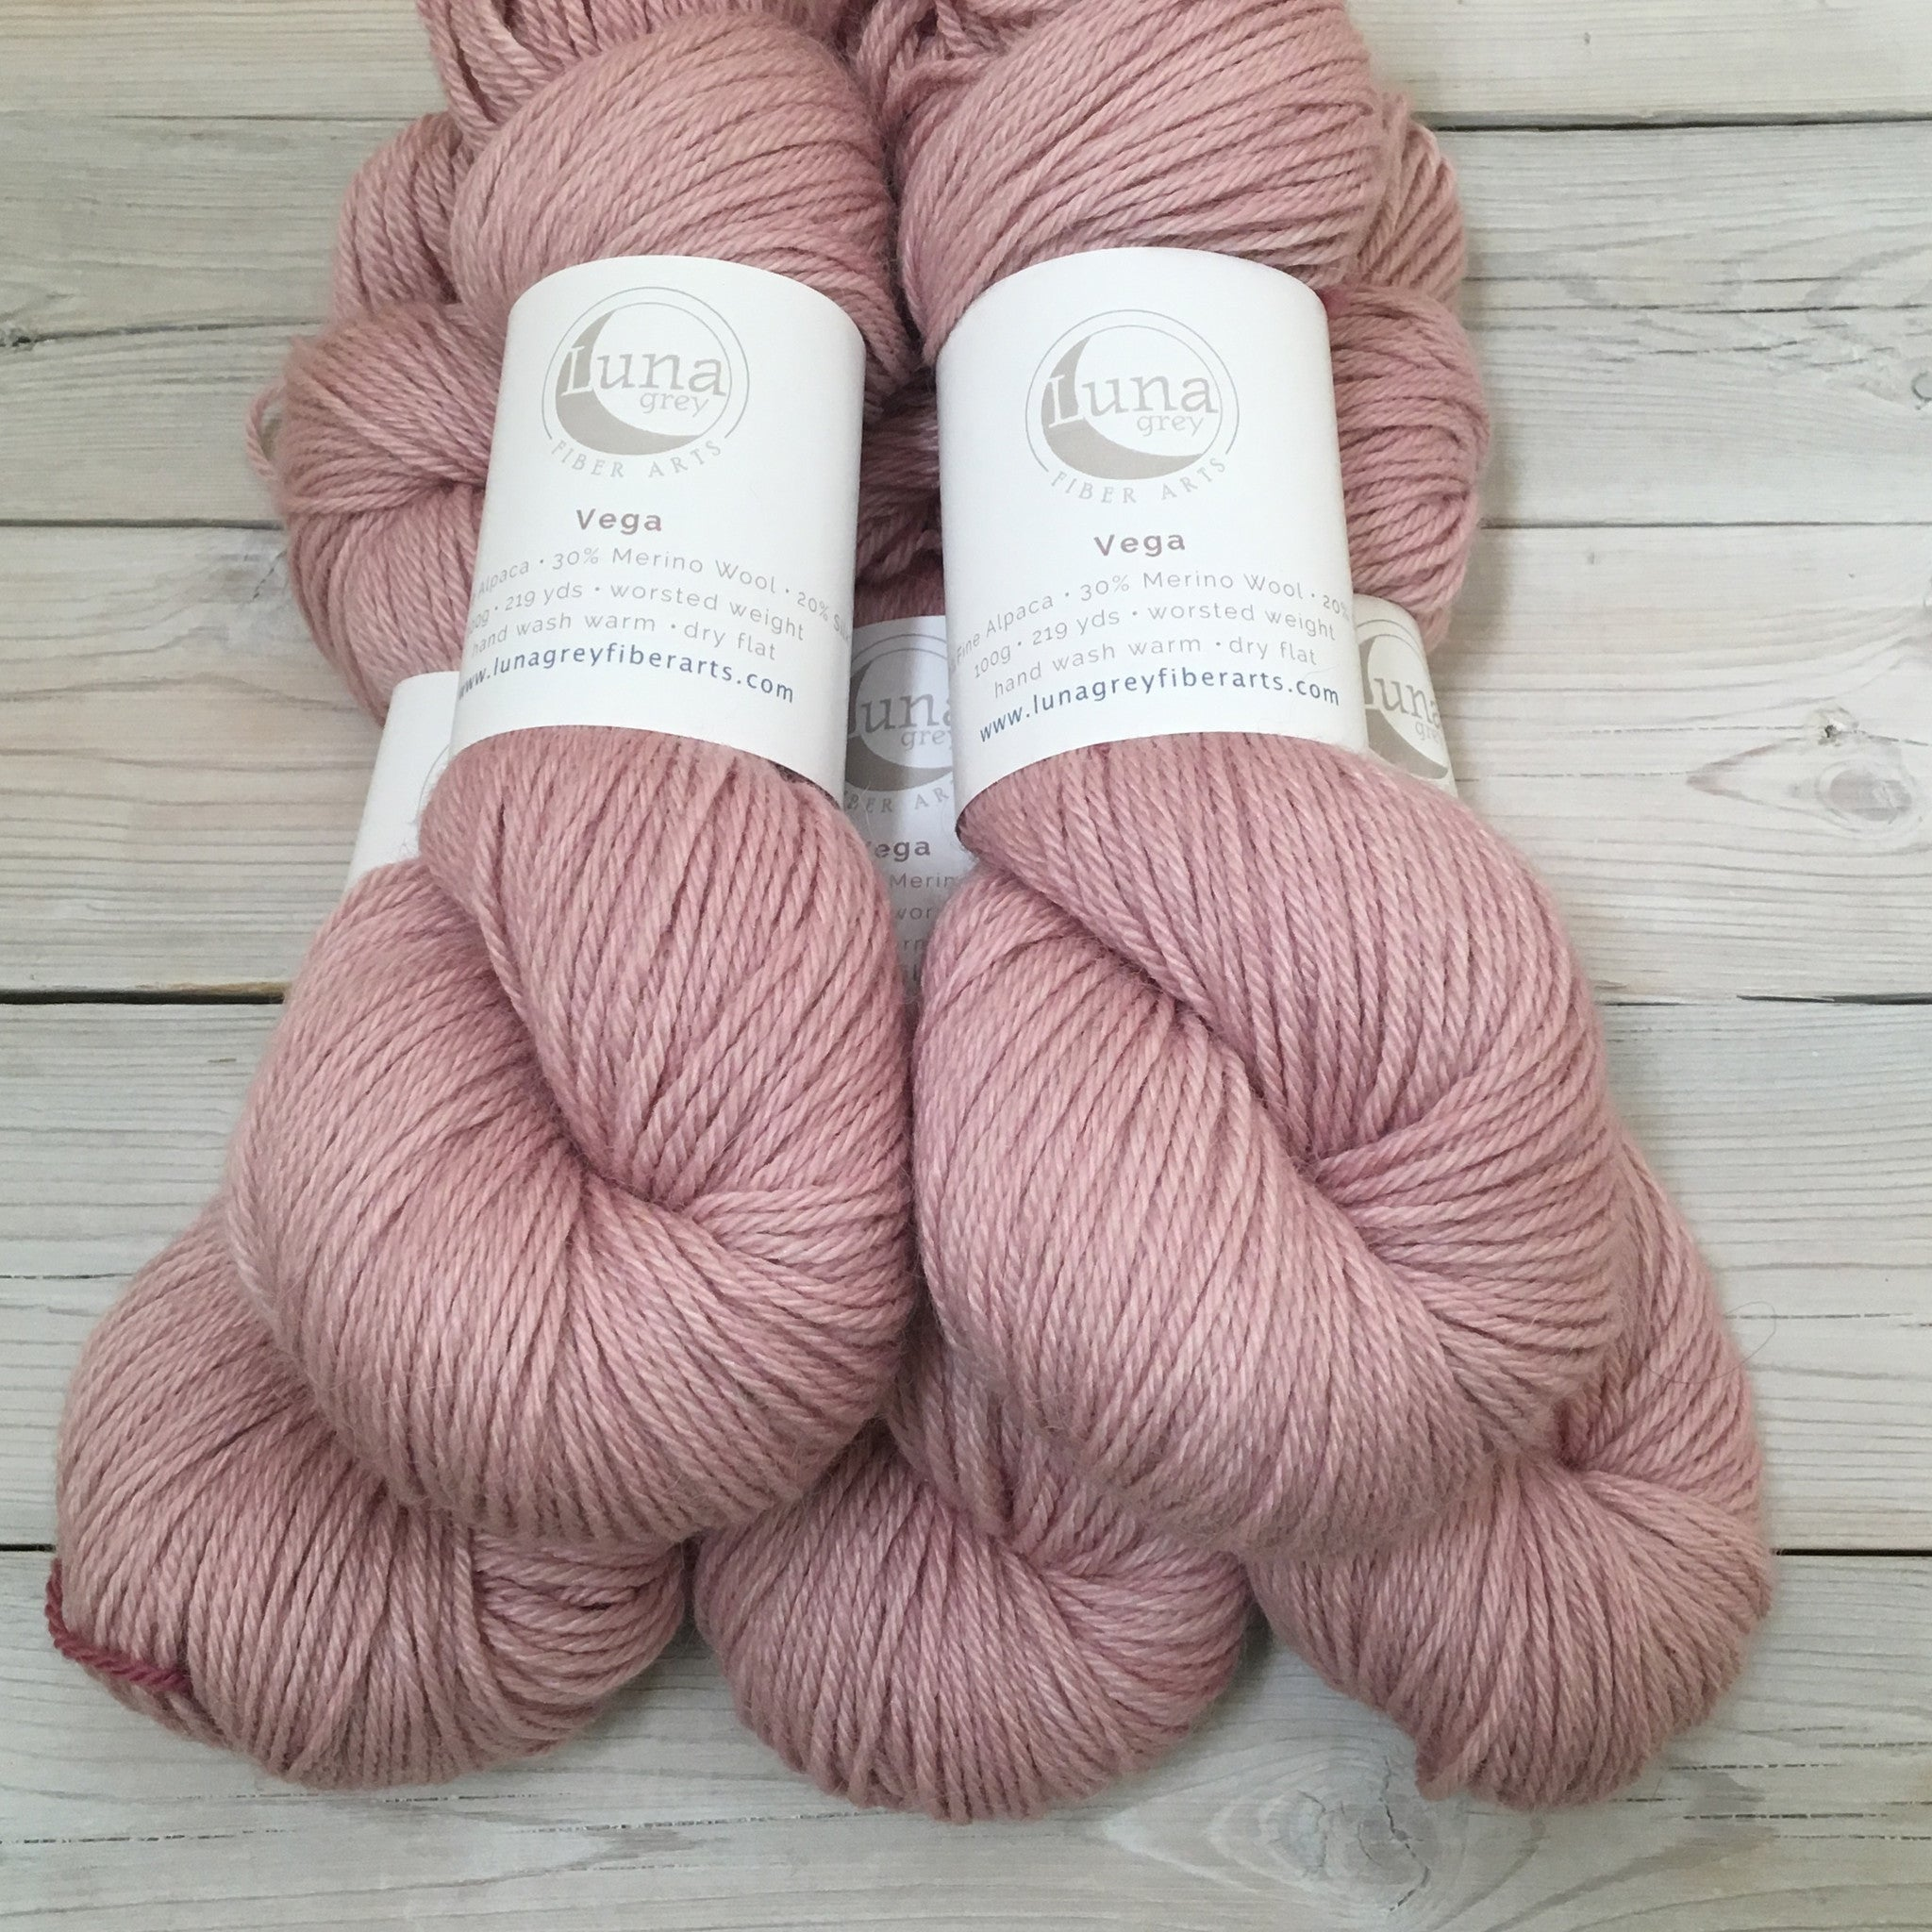 Luna Grey Fiber Arts Vega Yarn | Colorway: Tea Rose